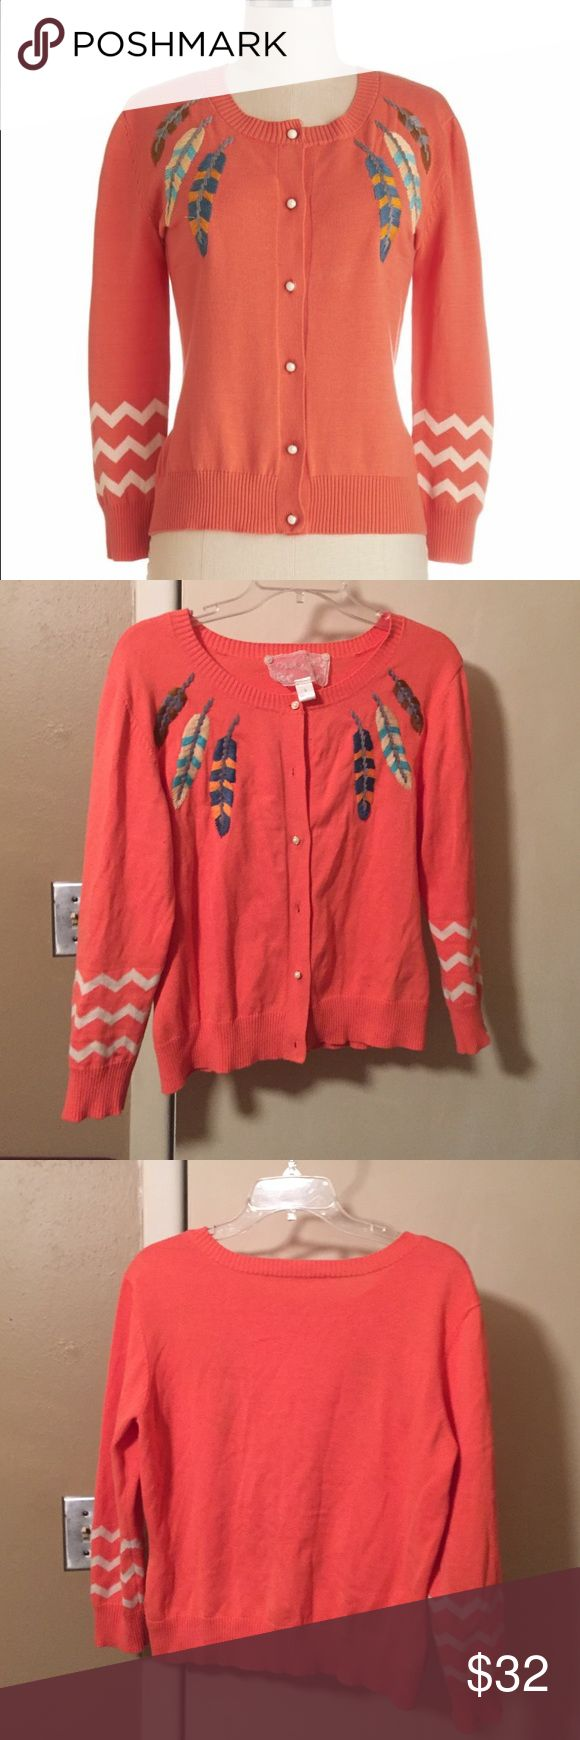 Trendy coral cardigan Trendy coral cardigan with embroderied feathers and pearl buttons. Triple off white chevron stripe at sleeve. Nick & Mo  Sweaters Cardigans